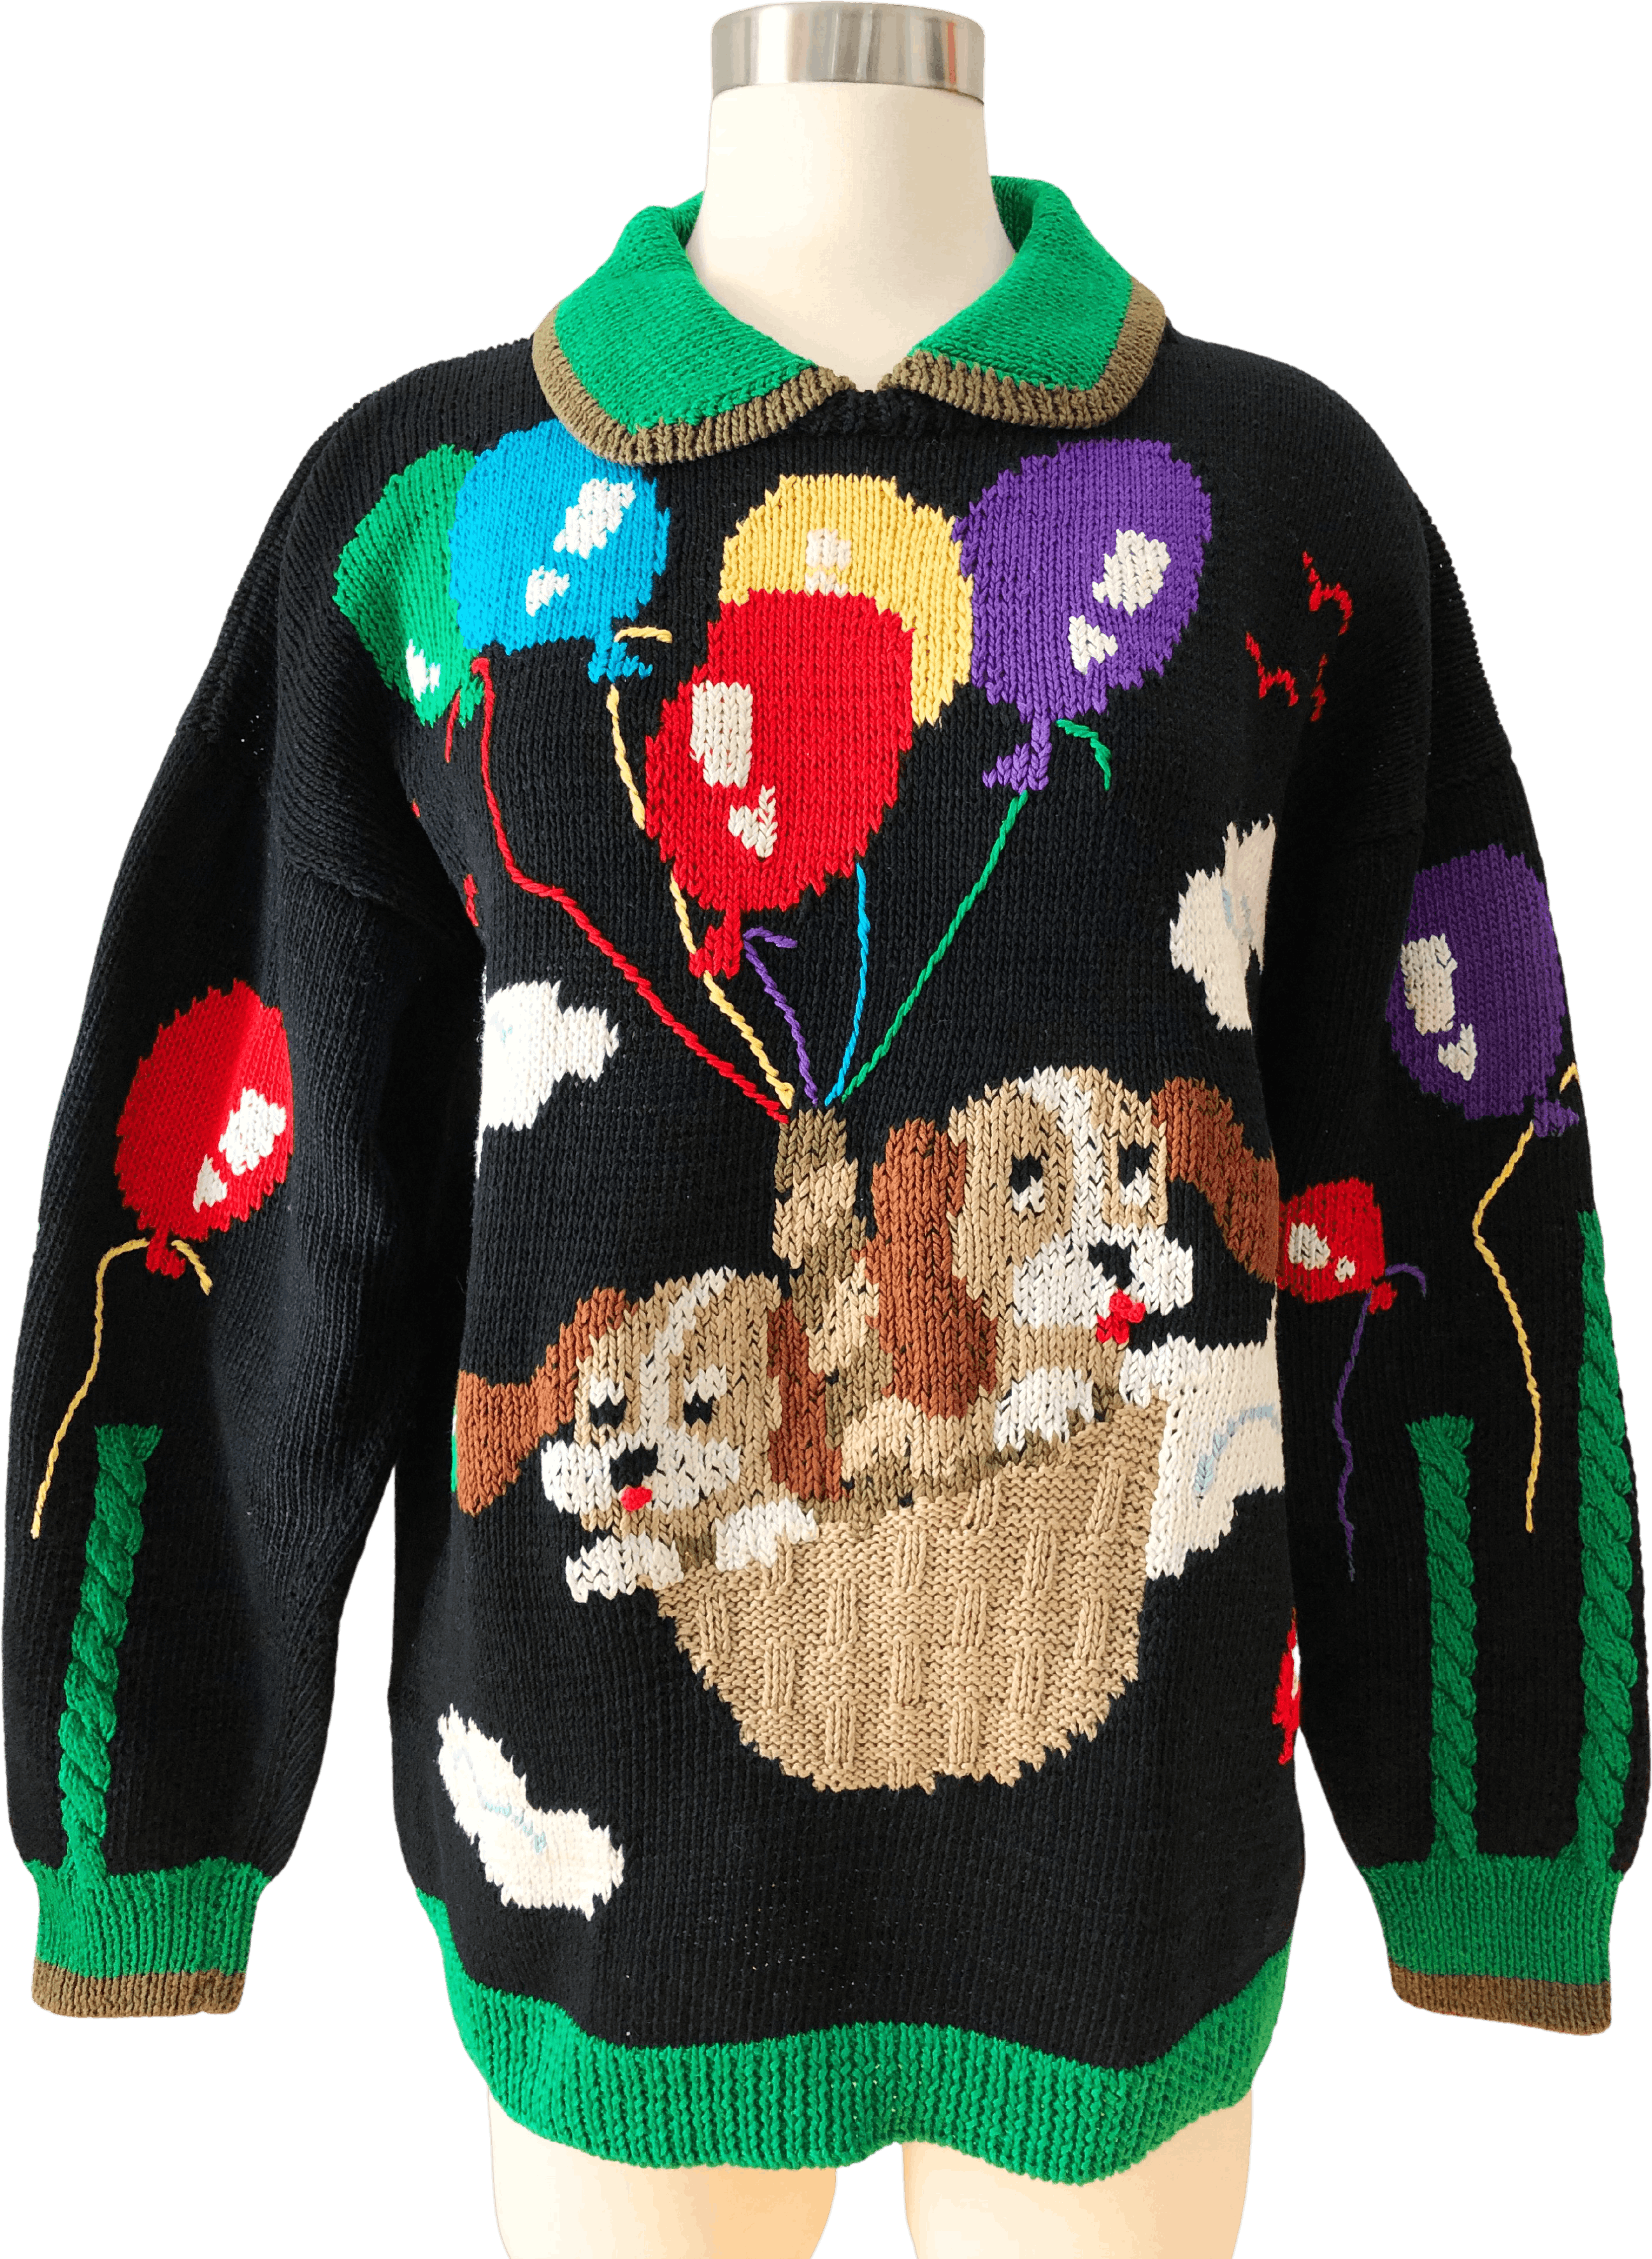 Custom Made Dog Sweater Crochet Yellow Winter Sweater Features a Floral Embroidery with Front Button Closure Made to Order